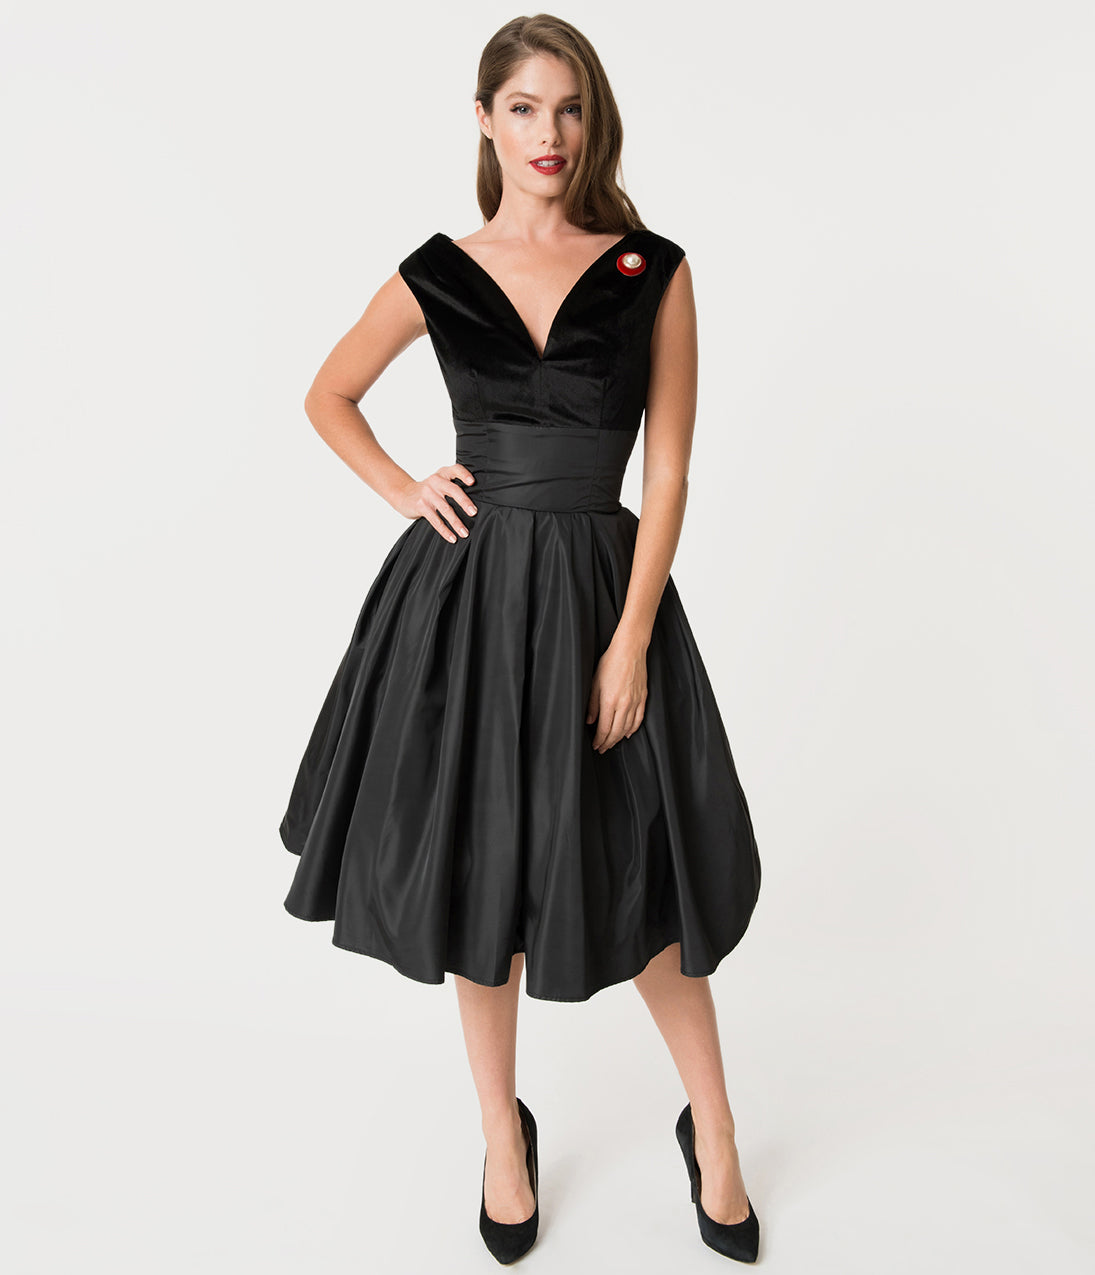 Vintage Evening Dresses and Formal Evening Gowns Unique Vintage 1950S Style Black Velvet  Taffeta Evie Swing Dress $74.00 AT vintagedancer.com